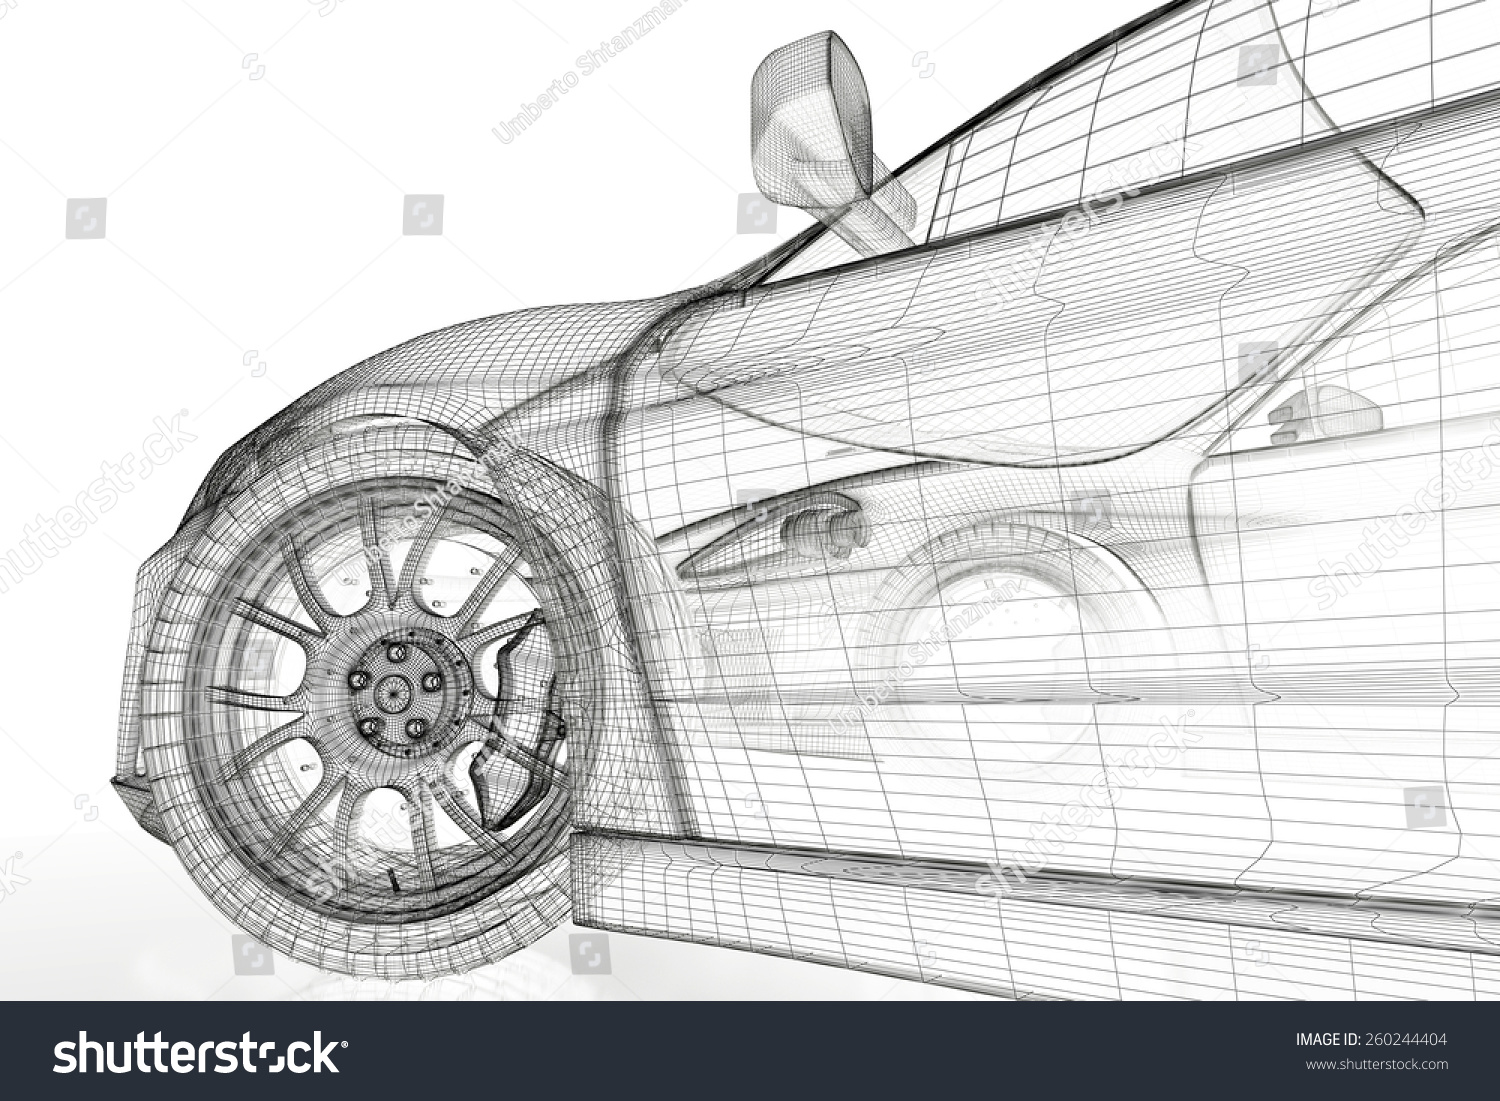 Complicated engineering drawing of car engine sect stock blue print blueprint car malvernweather Images